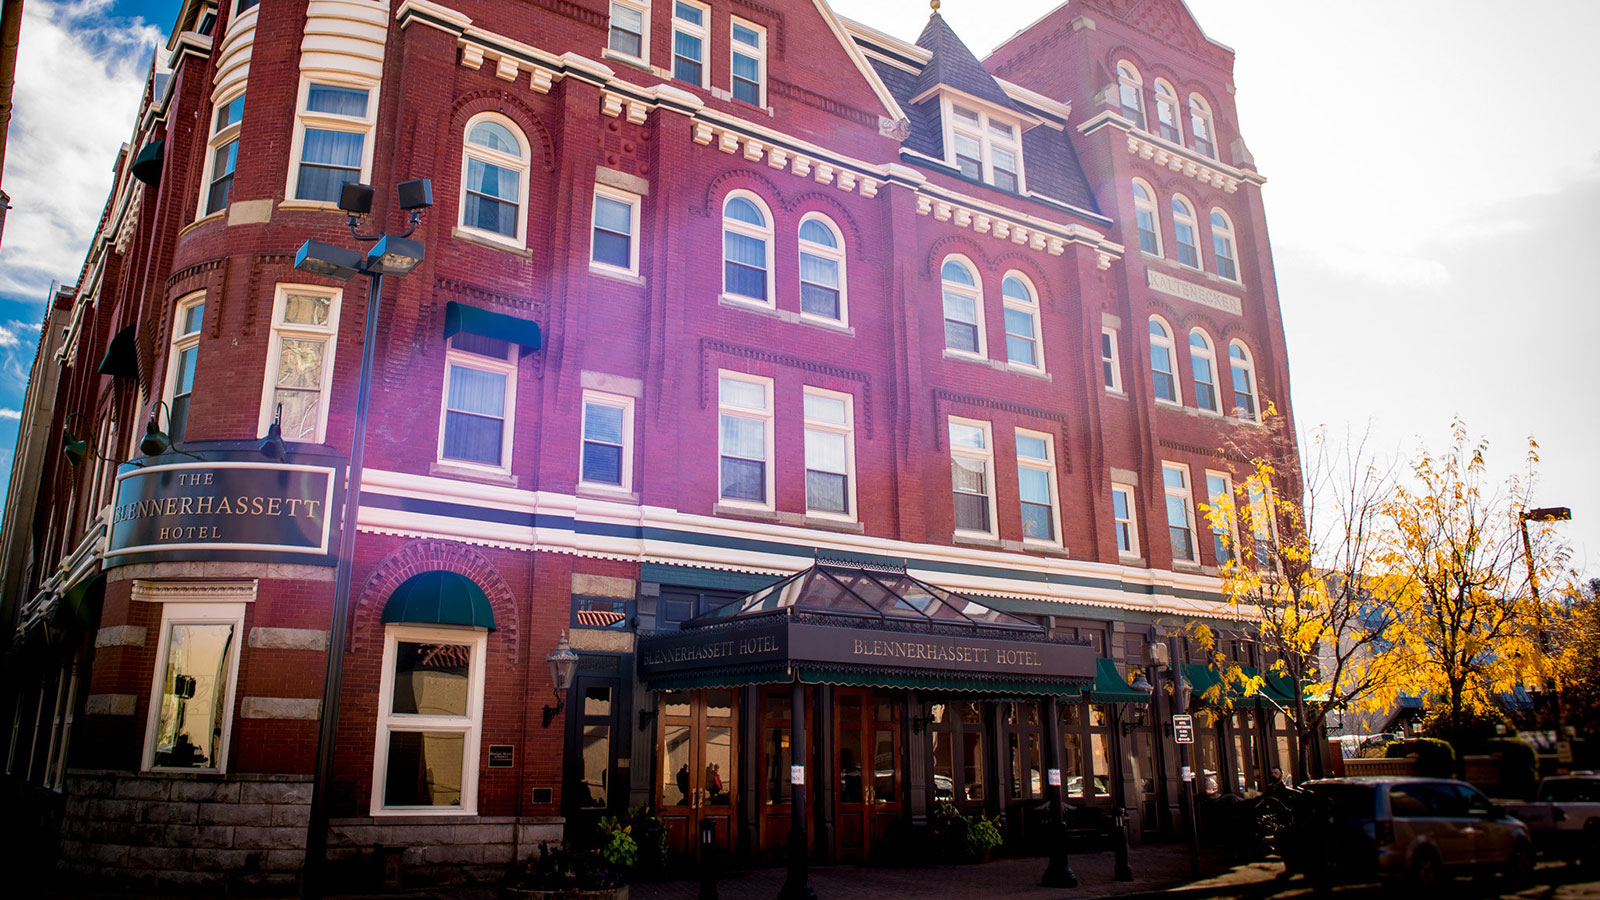 Image of Facade of The Blennerhassett Hotel, 1889, Member of Historic Hotels of America, Parkersburg, West Virginia, Discover